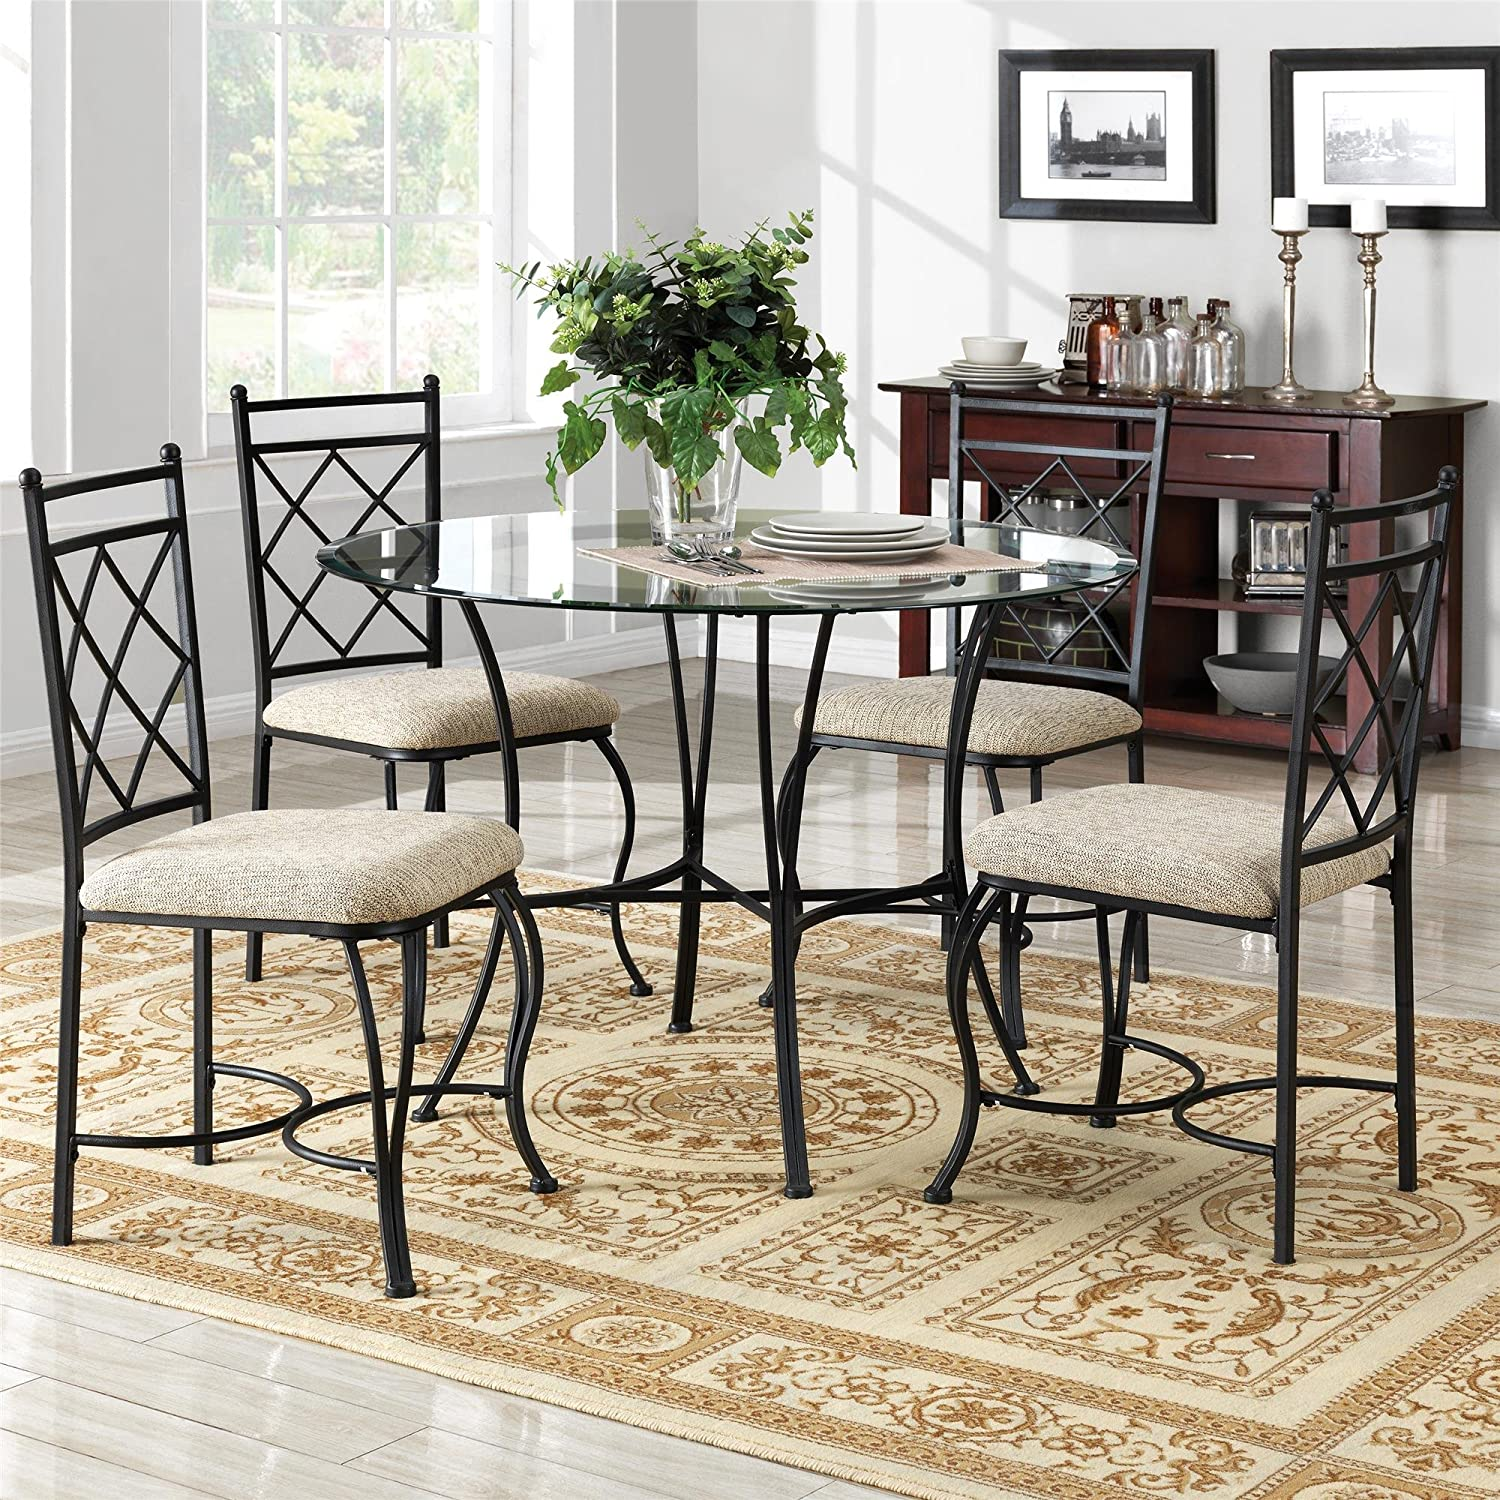 Amazoncom Mainstays 5 Piece Glass Top Metal Dining Set Home Kitchen